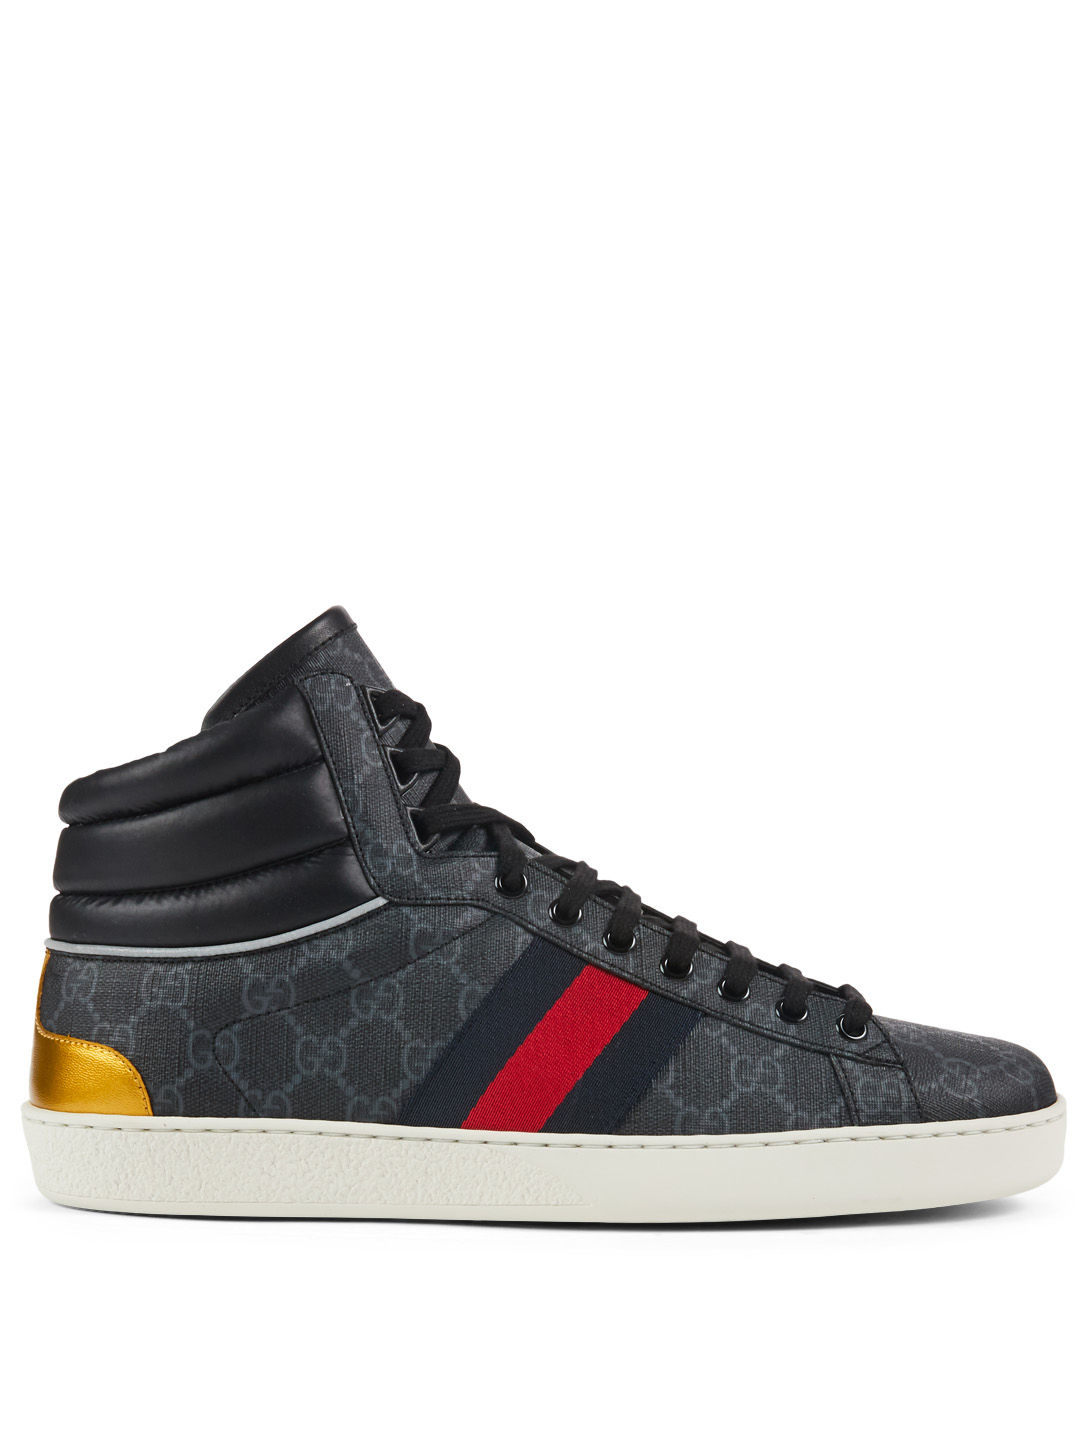 72c5233a222a4 GUCCI Ace GG Supreme Canvas High-Top Sneakers